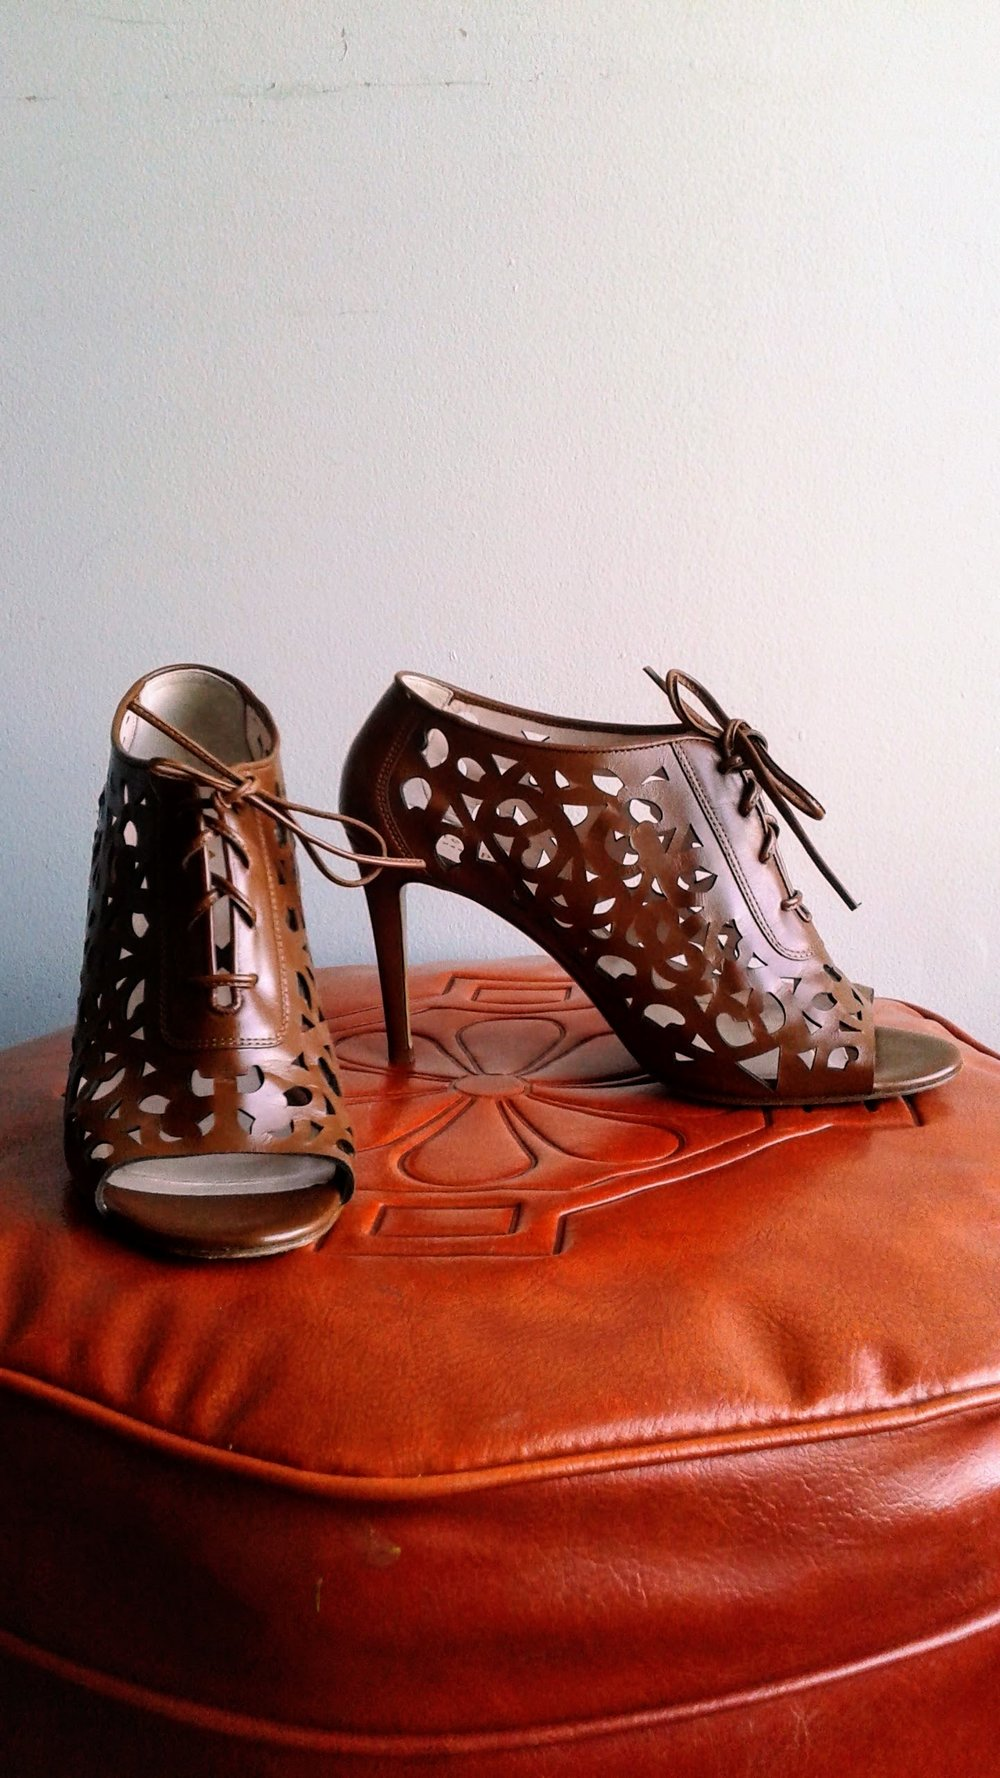 Kate Spade shoes; Size 9, $175